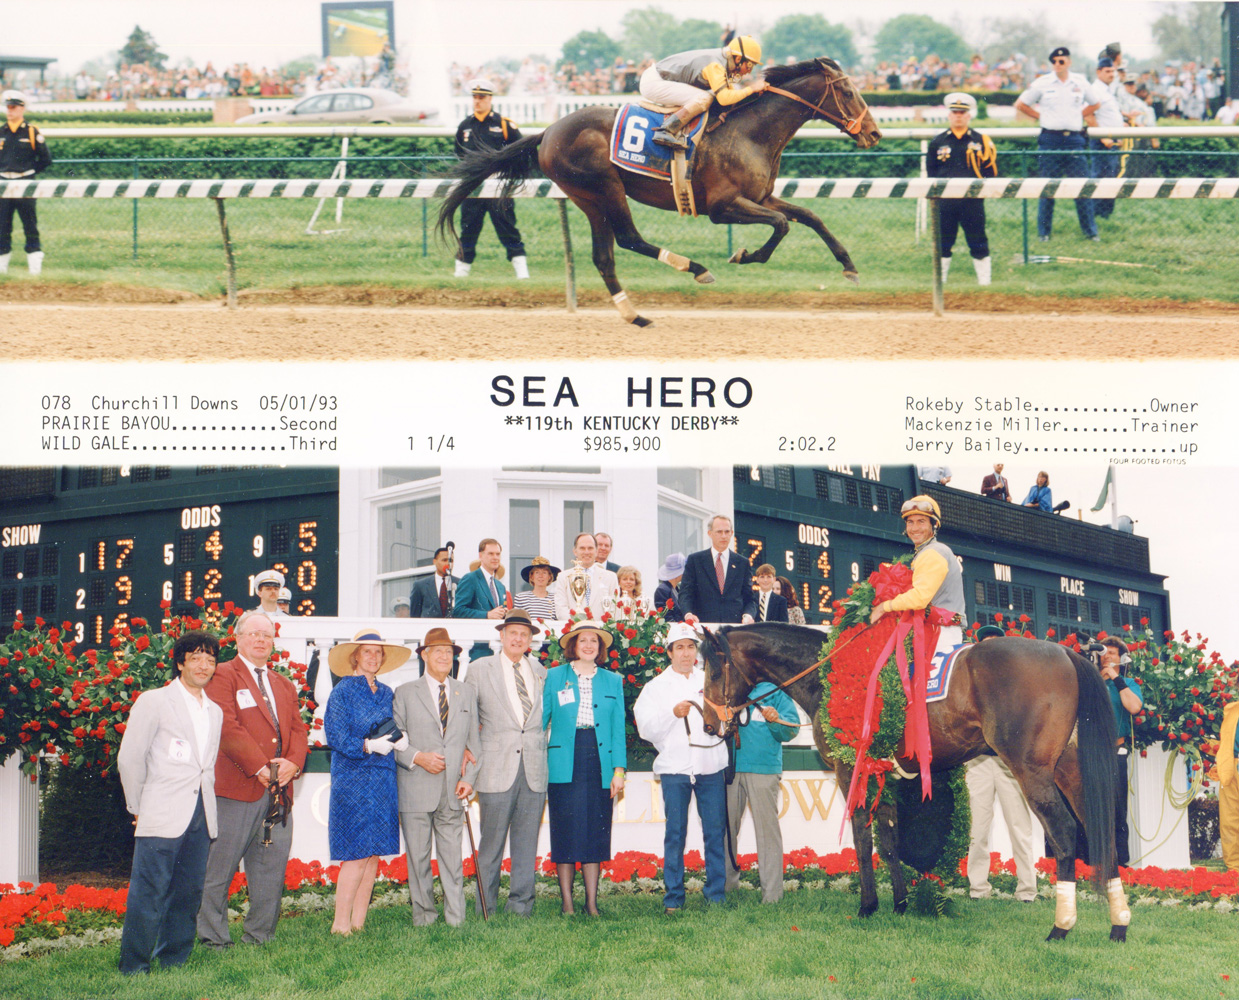 Win composite photograph for the 1993 Kentucky Derby (won by Paul Mellon's Sea Hero) (Four Footed Fotos, Inc./Museum Collection)